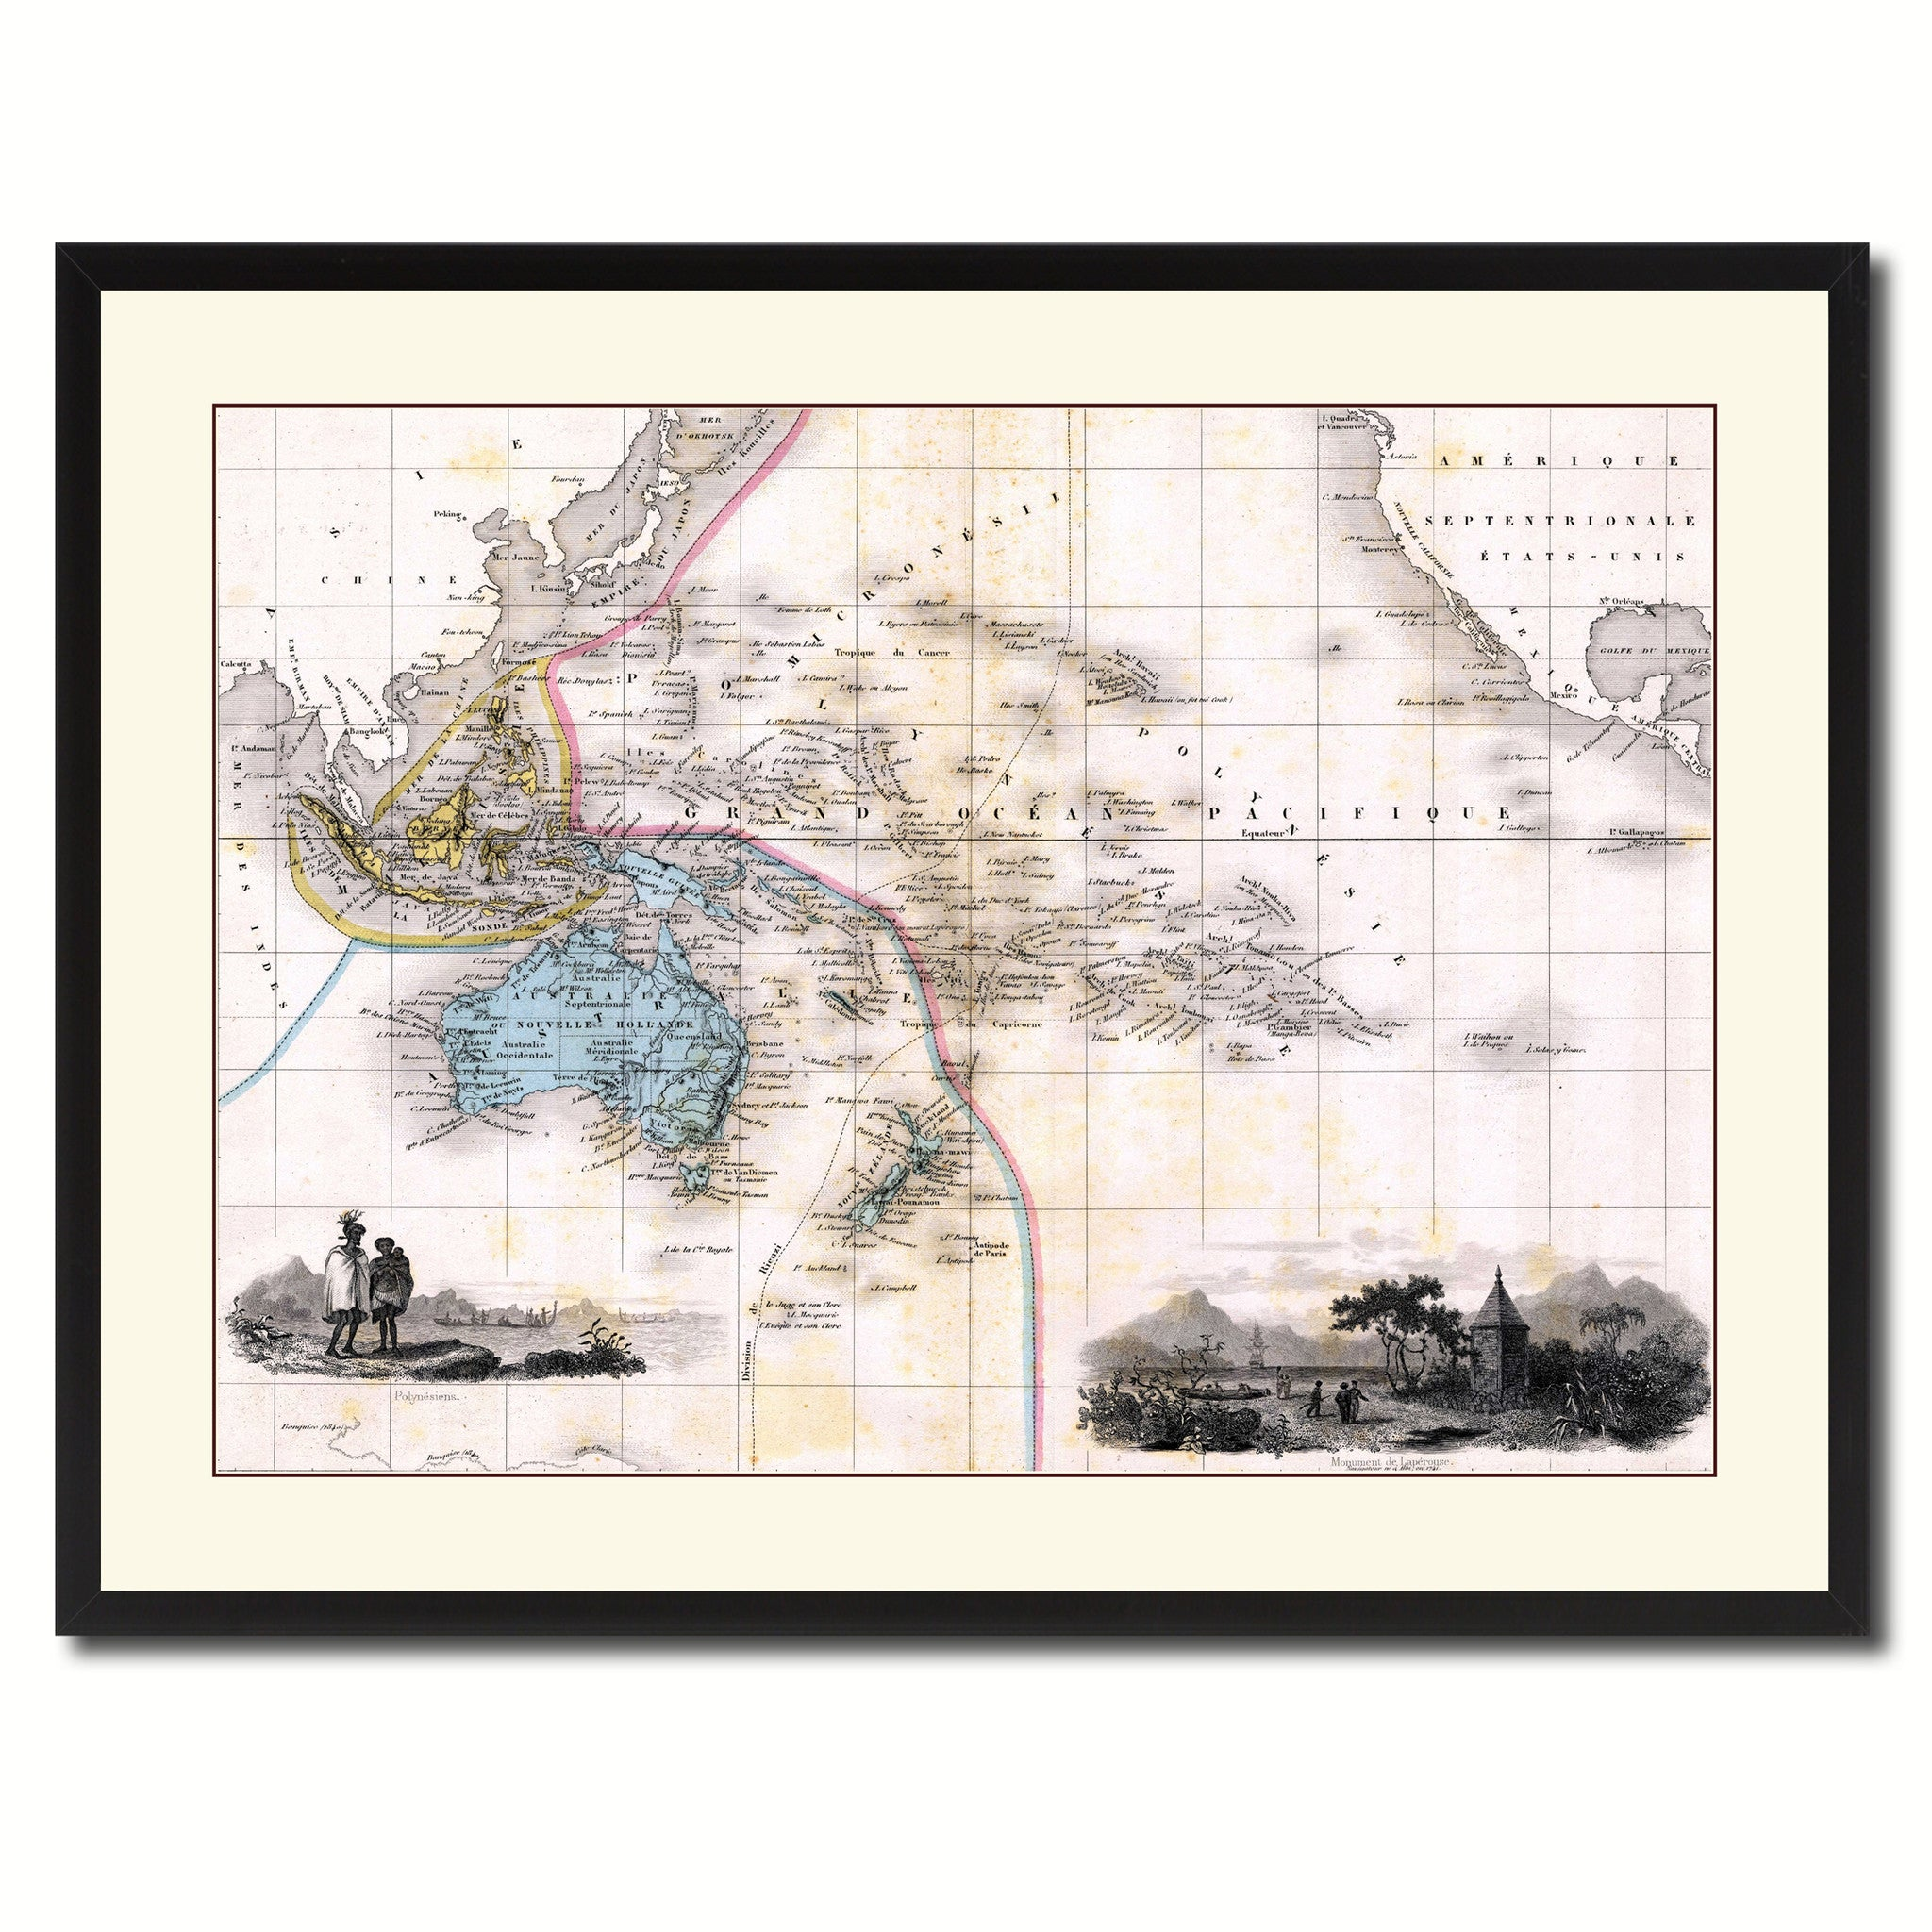 Oceania australia new zealand vintage antique map wall art home decor gift ideas ebay Home decor wall decor australia